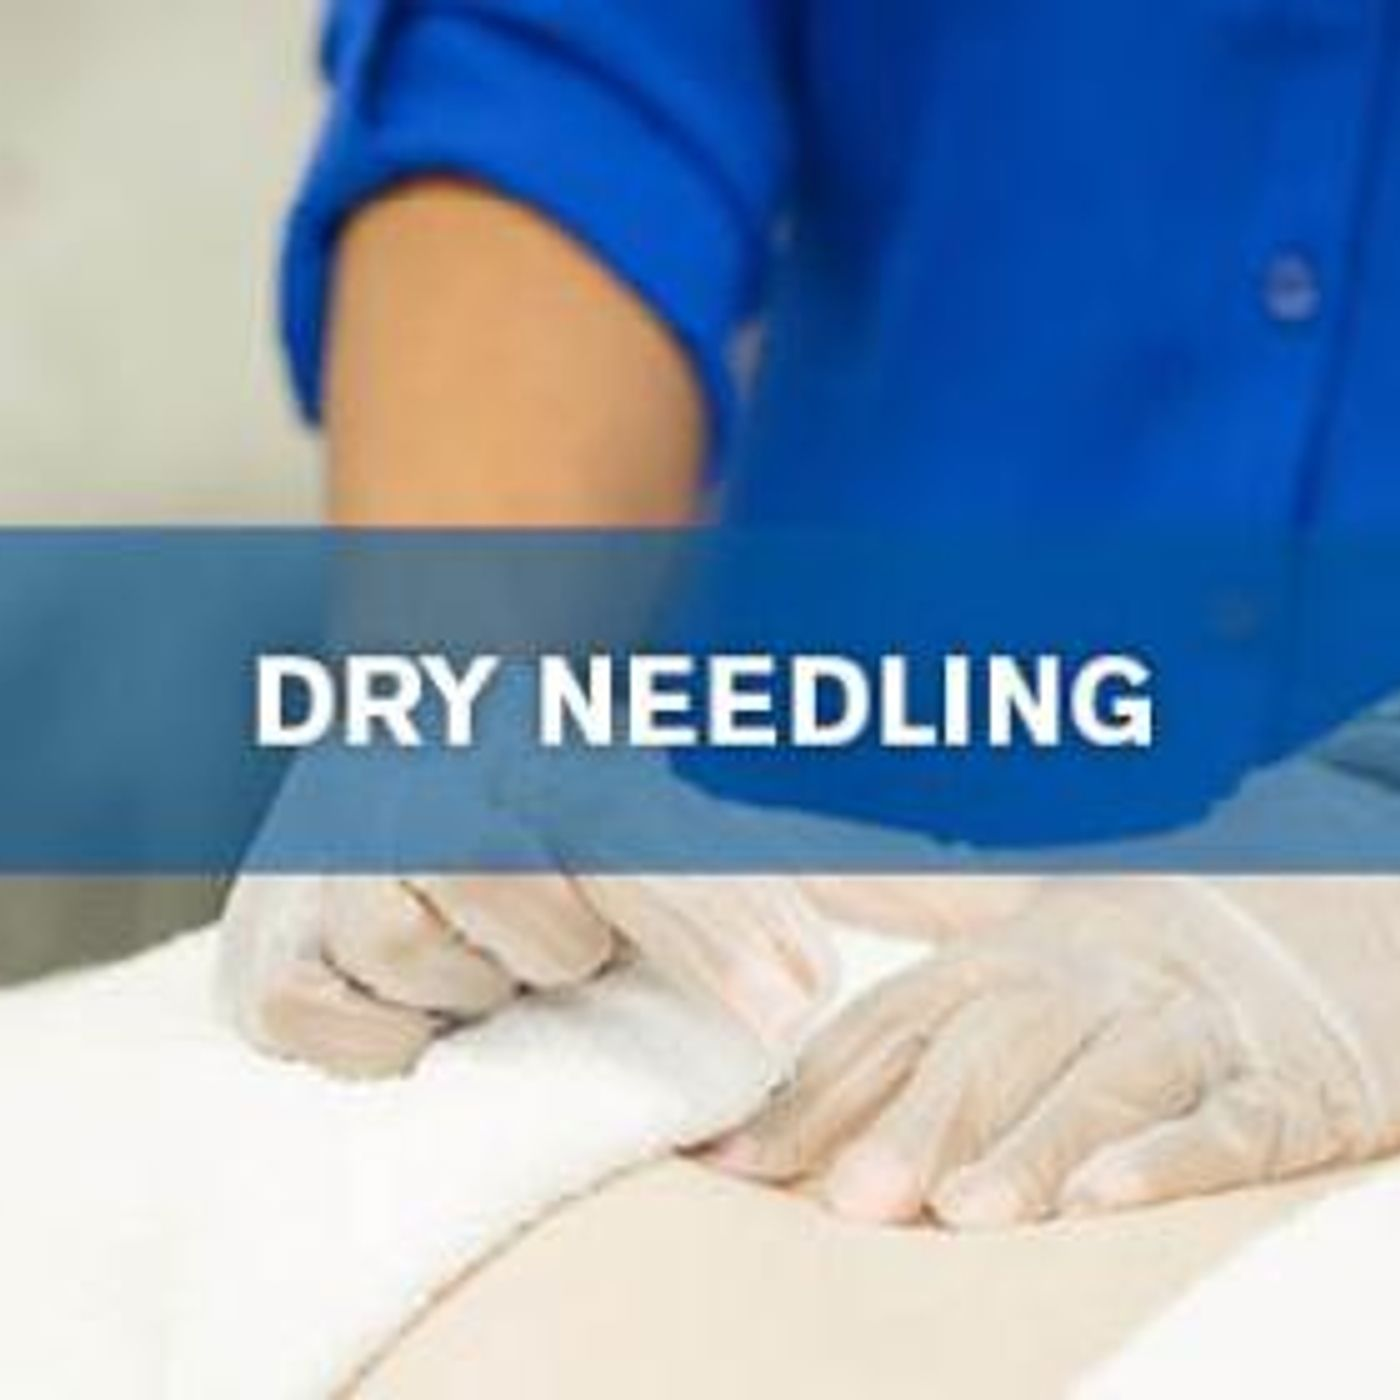 Can Dry Needling Help?